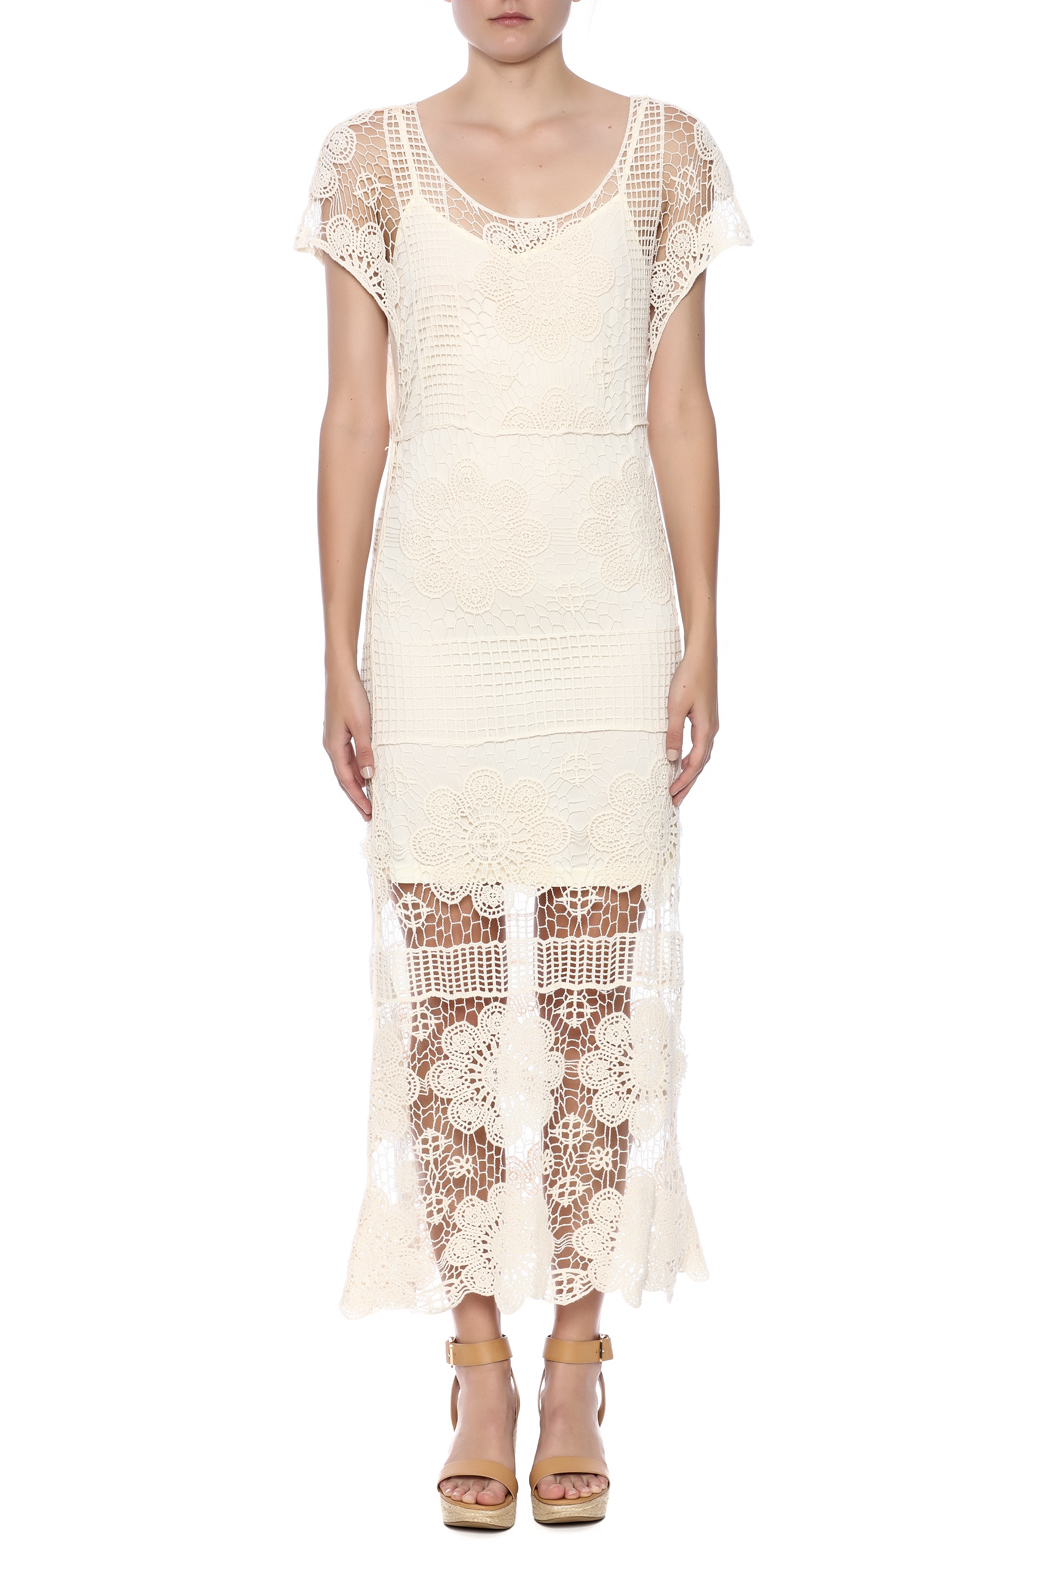 fashion on earth Ivory Romance Dress - Front Cropped Image